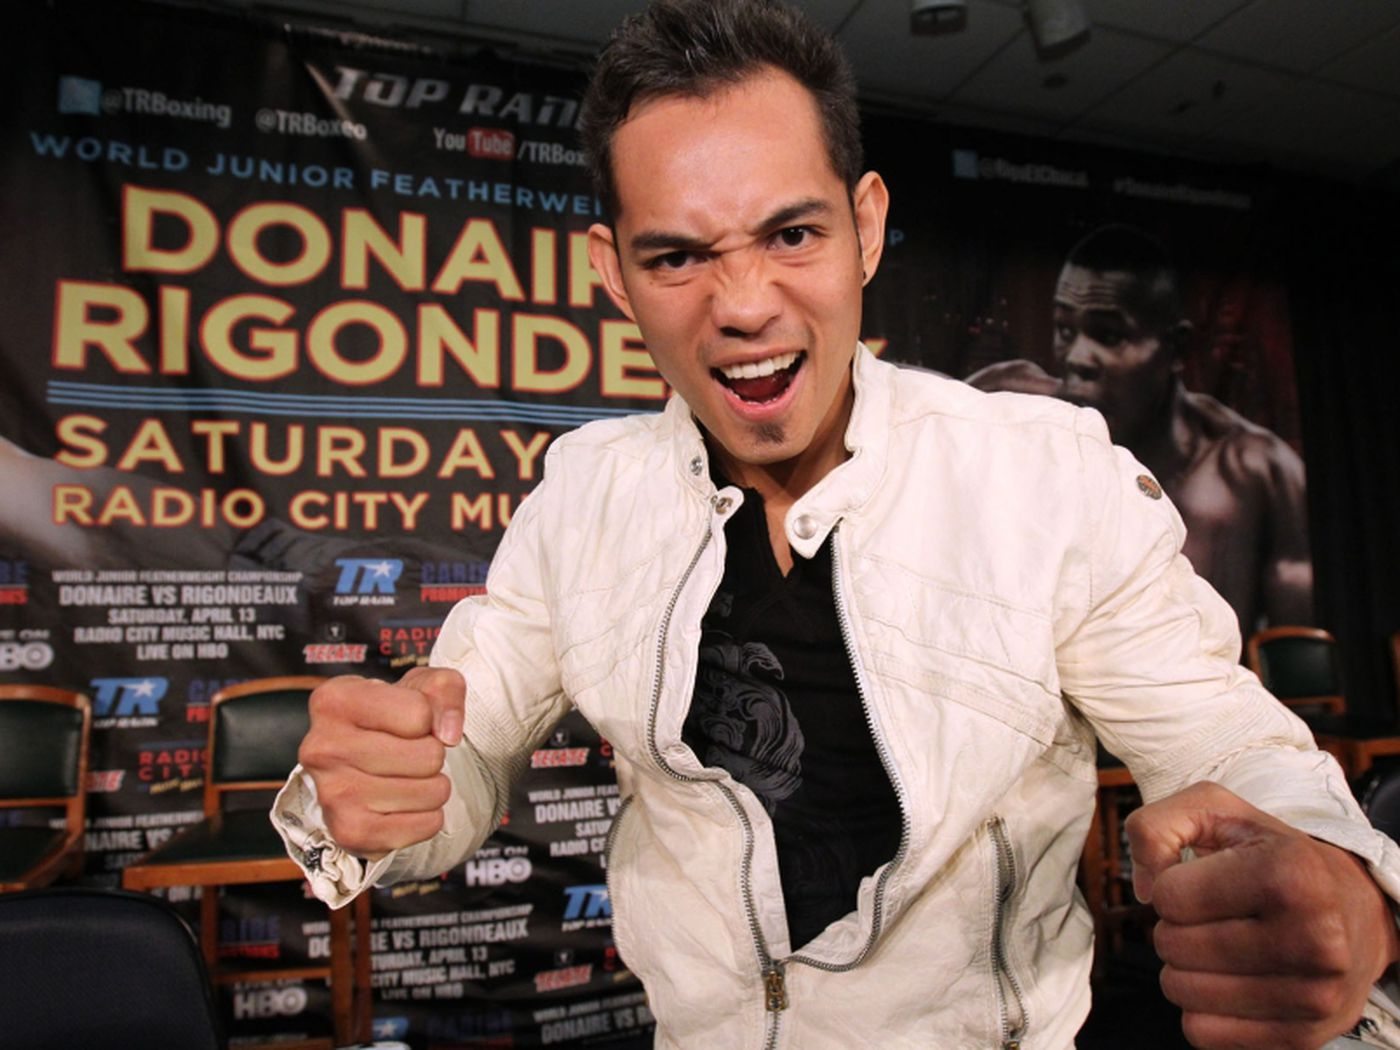 Donaire vs rigondeaux oddschecker betting today in sports betting podcasts